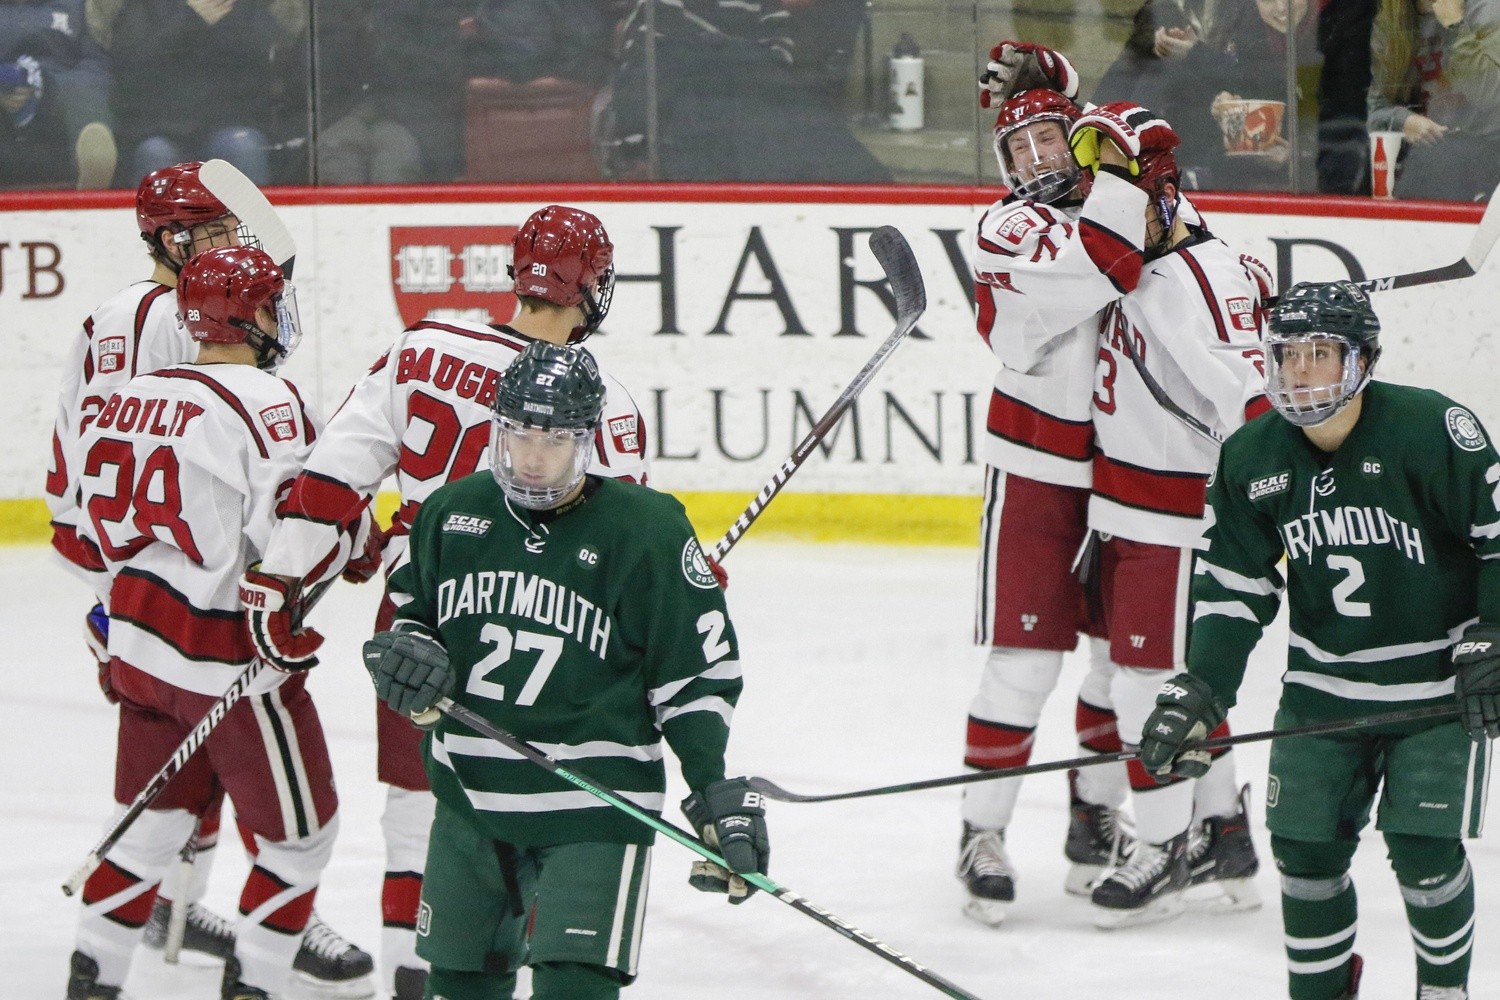 Last year, the Crimson beat the Big Green in a three-game series to advance to Lake Placid.